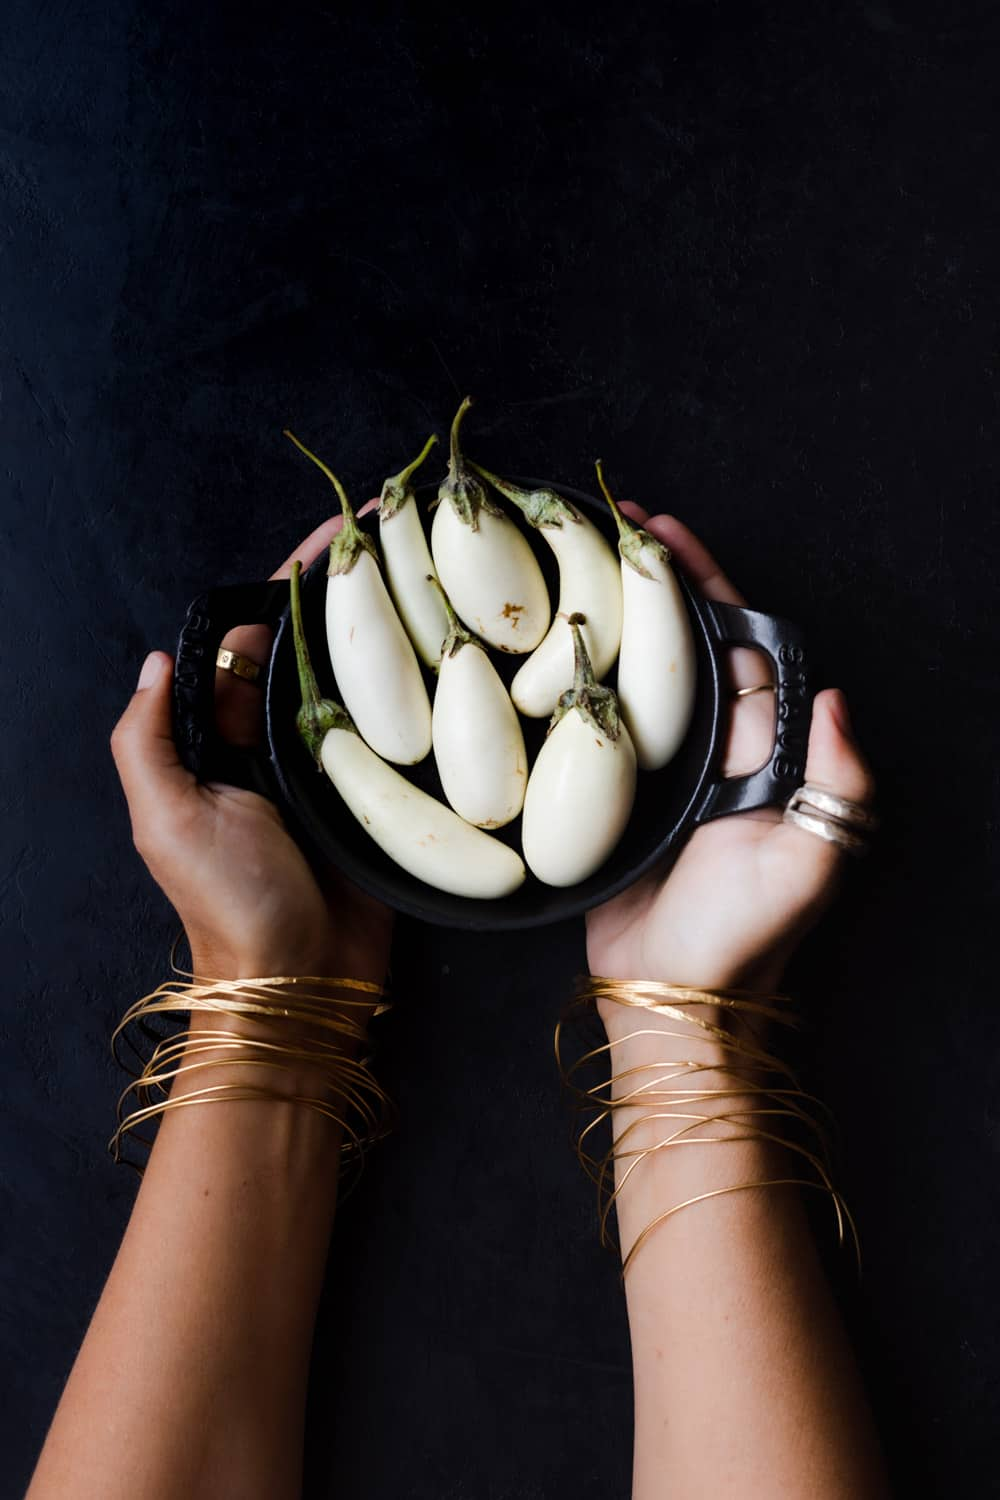 Black bowl filled with white eggplants; carried by Daniela Gerson wearing gold rings and bracelets on a black background.